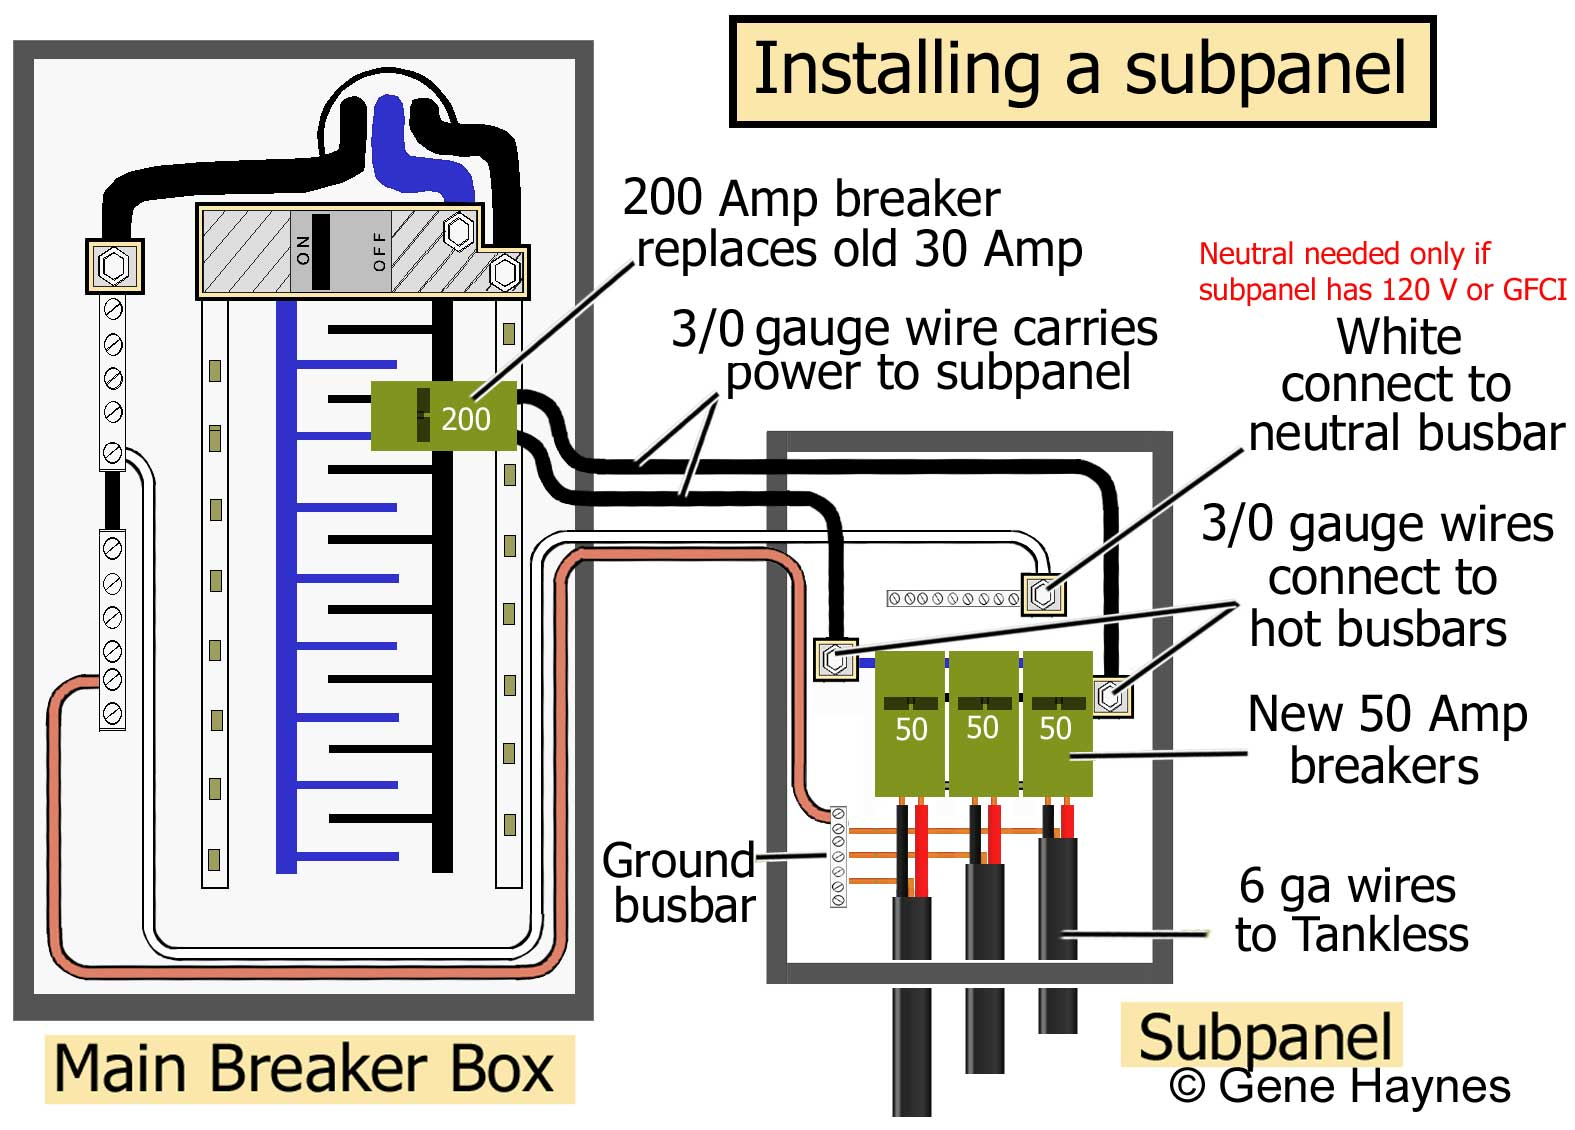 main panel to sub wiring diagram friedland d107 doorbell instructions how install a subpanel lug 150 amp breaker uses 2 0 wire neutral needed only if has 120volt breakers or gfci ground required for all installations will